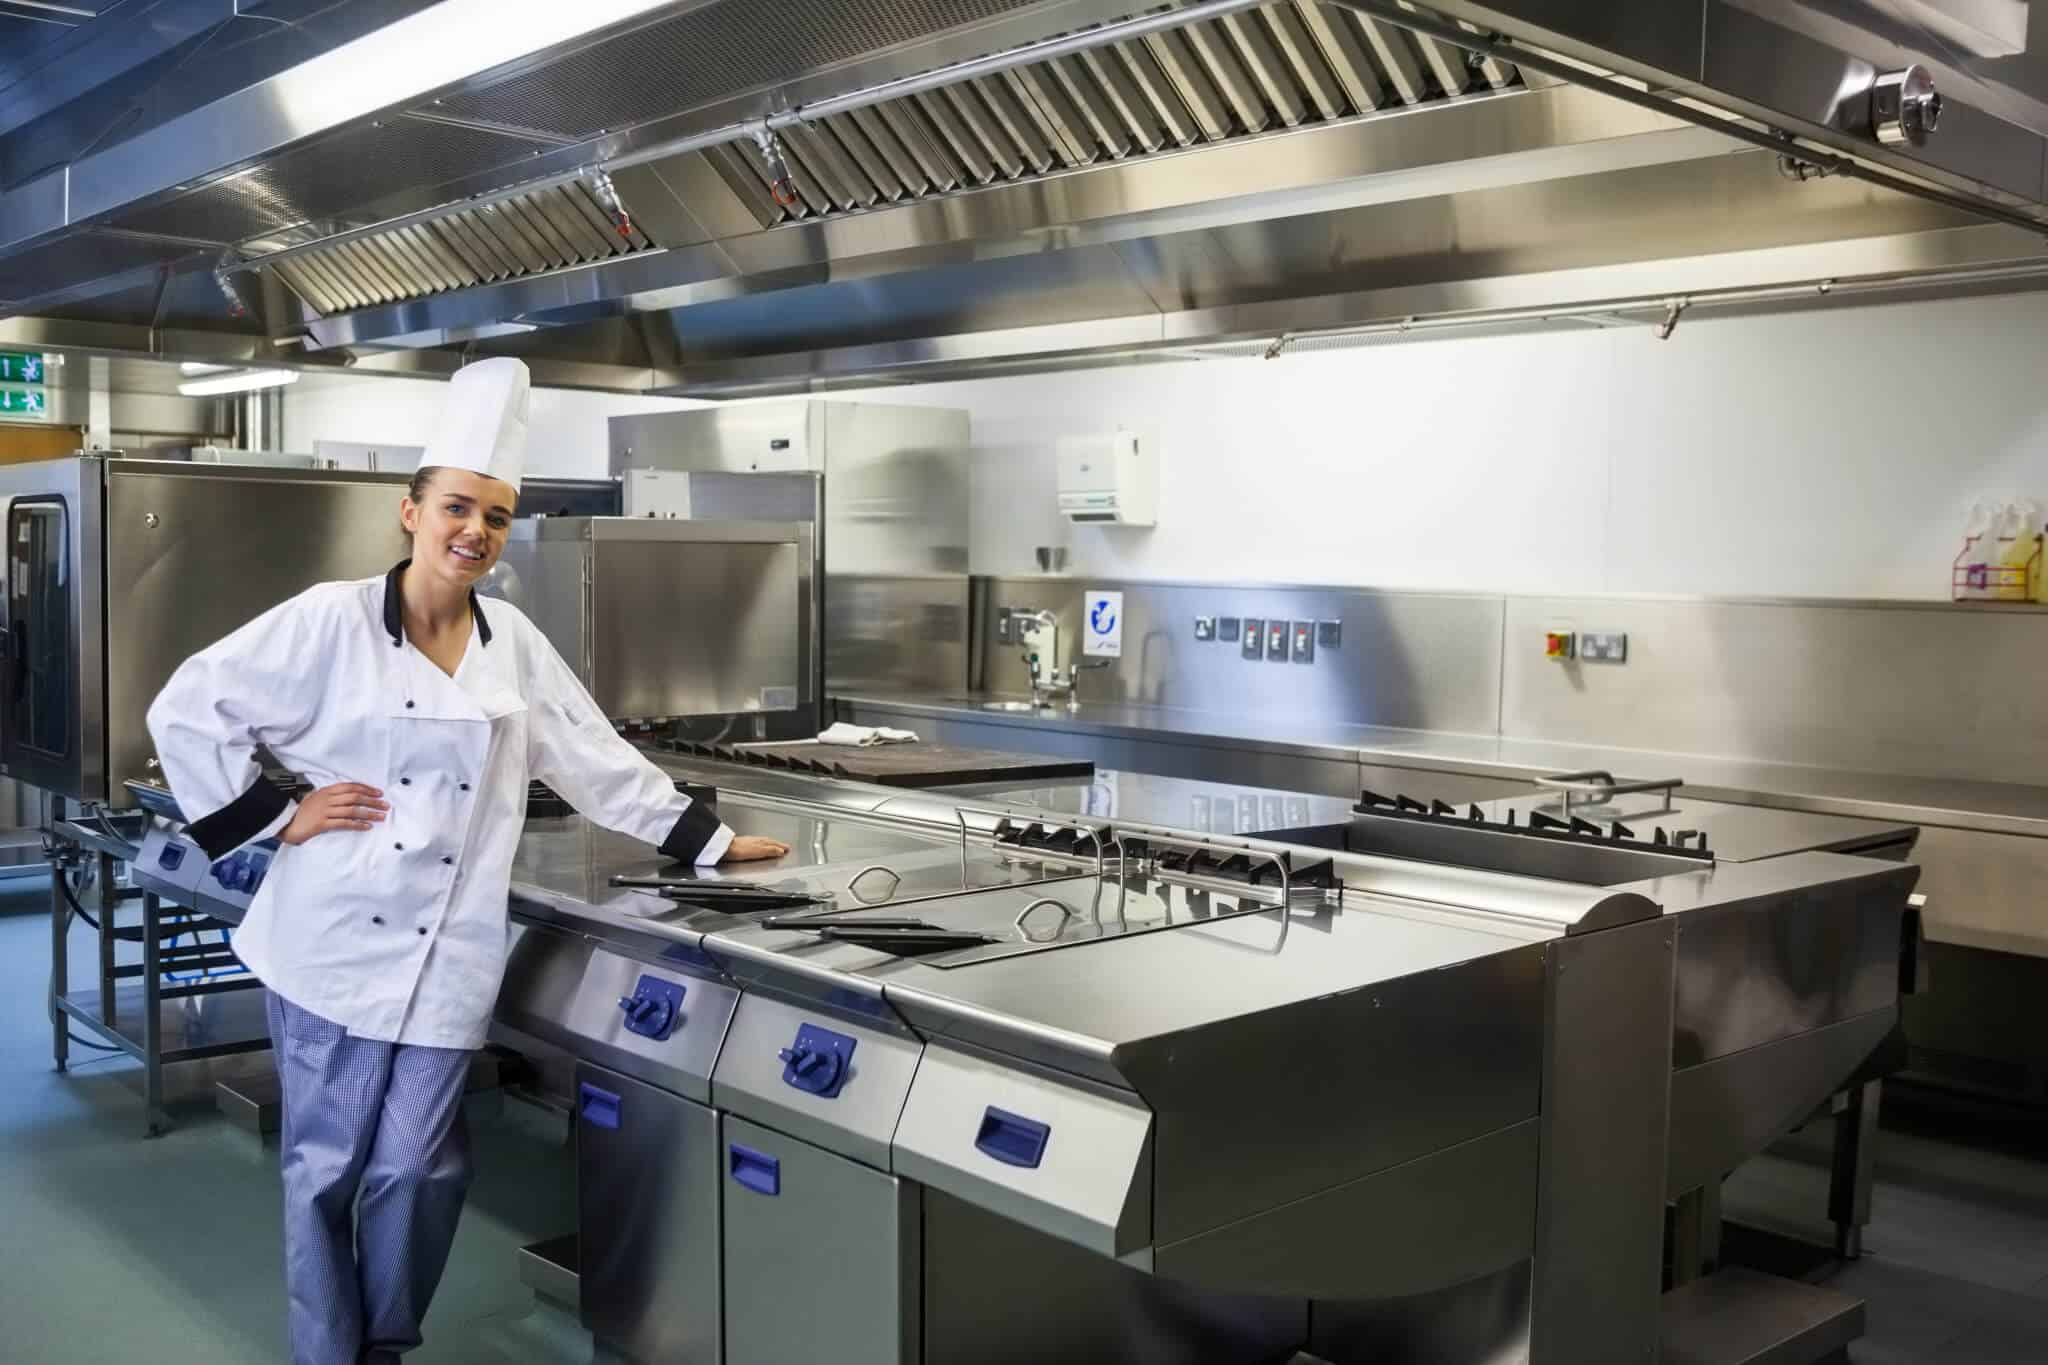 Industrie Küche Kitchen Maintenance Agreements For Your Business In Chapel